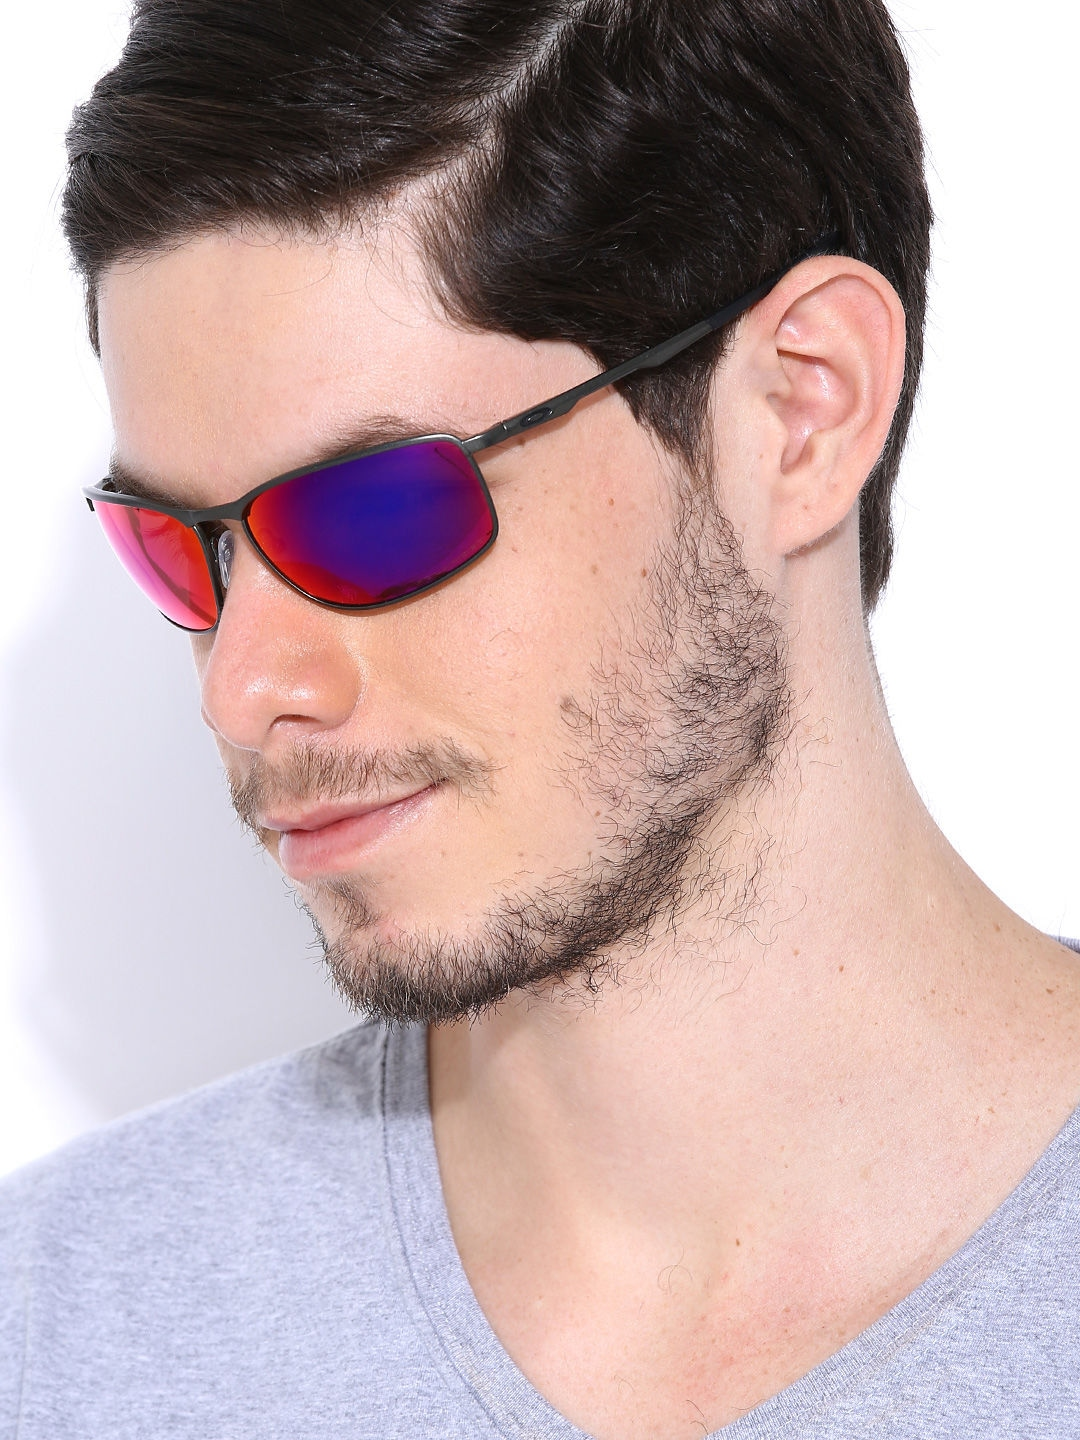 oakley why 8  Buy OAKLEY Conductor 8 Men Mirrored Rectangle Sunglasses 0OO4107 ...